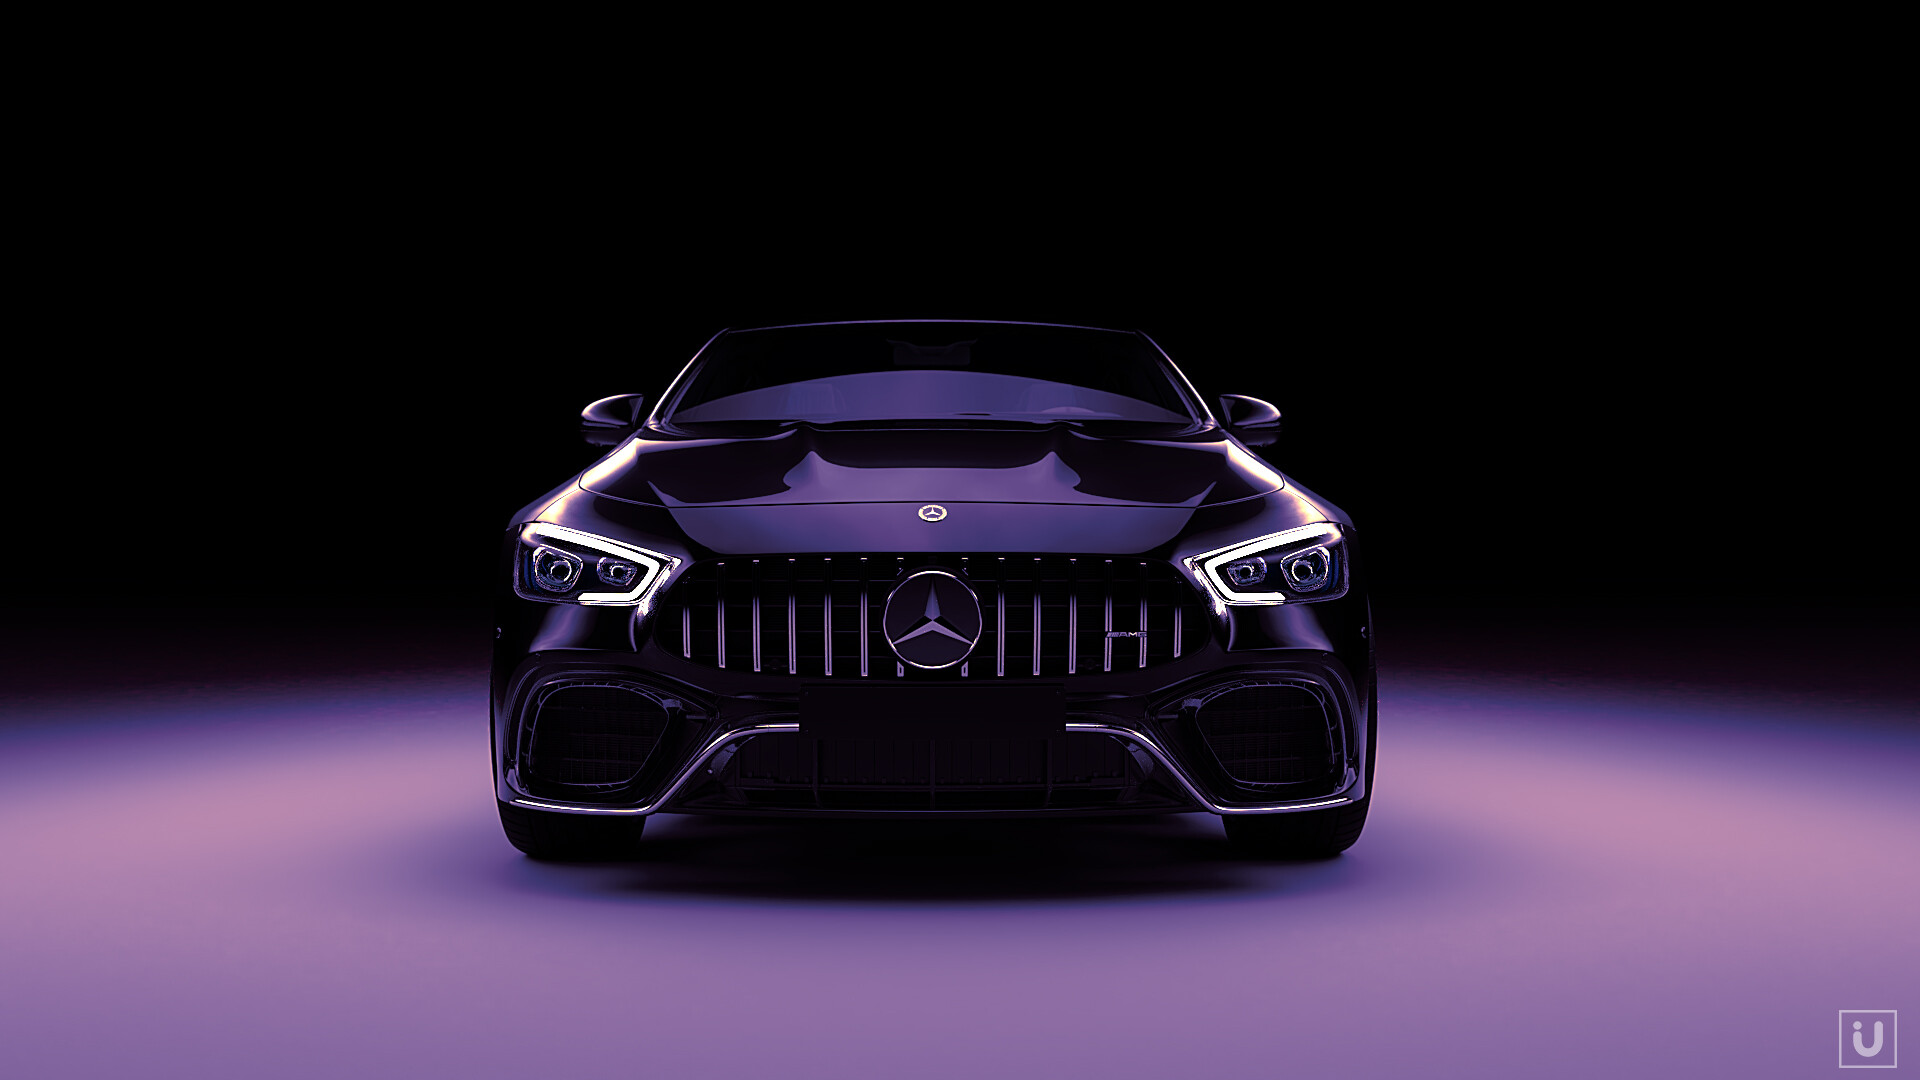 Get Here Mercedes Benz Gt 63 S Amg Wallpaper - friend quotes